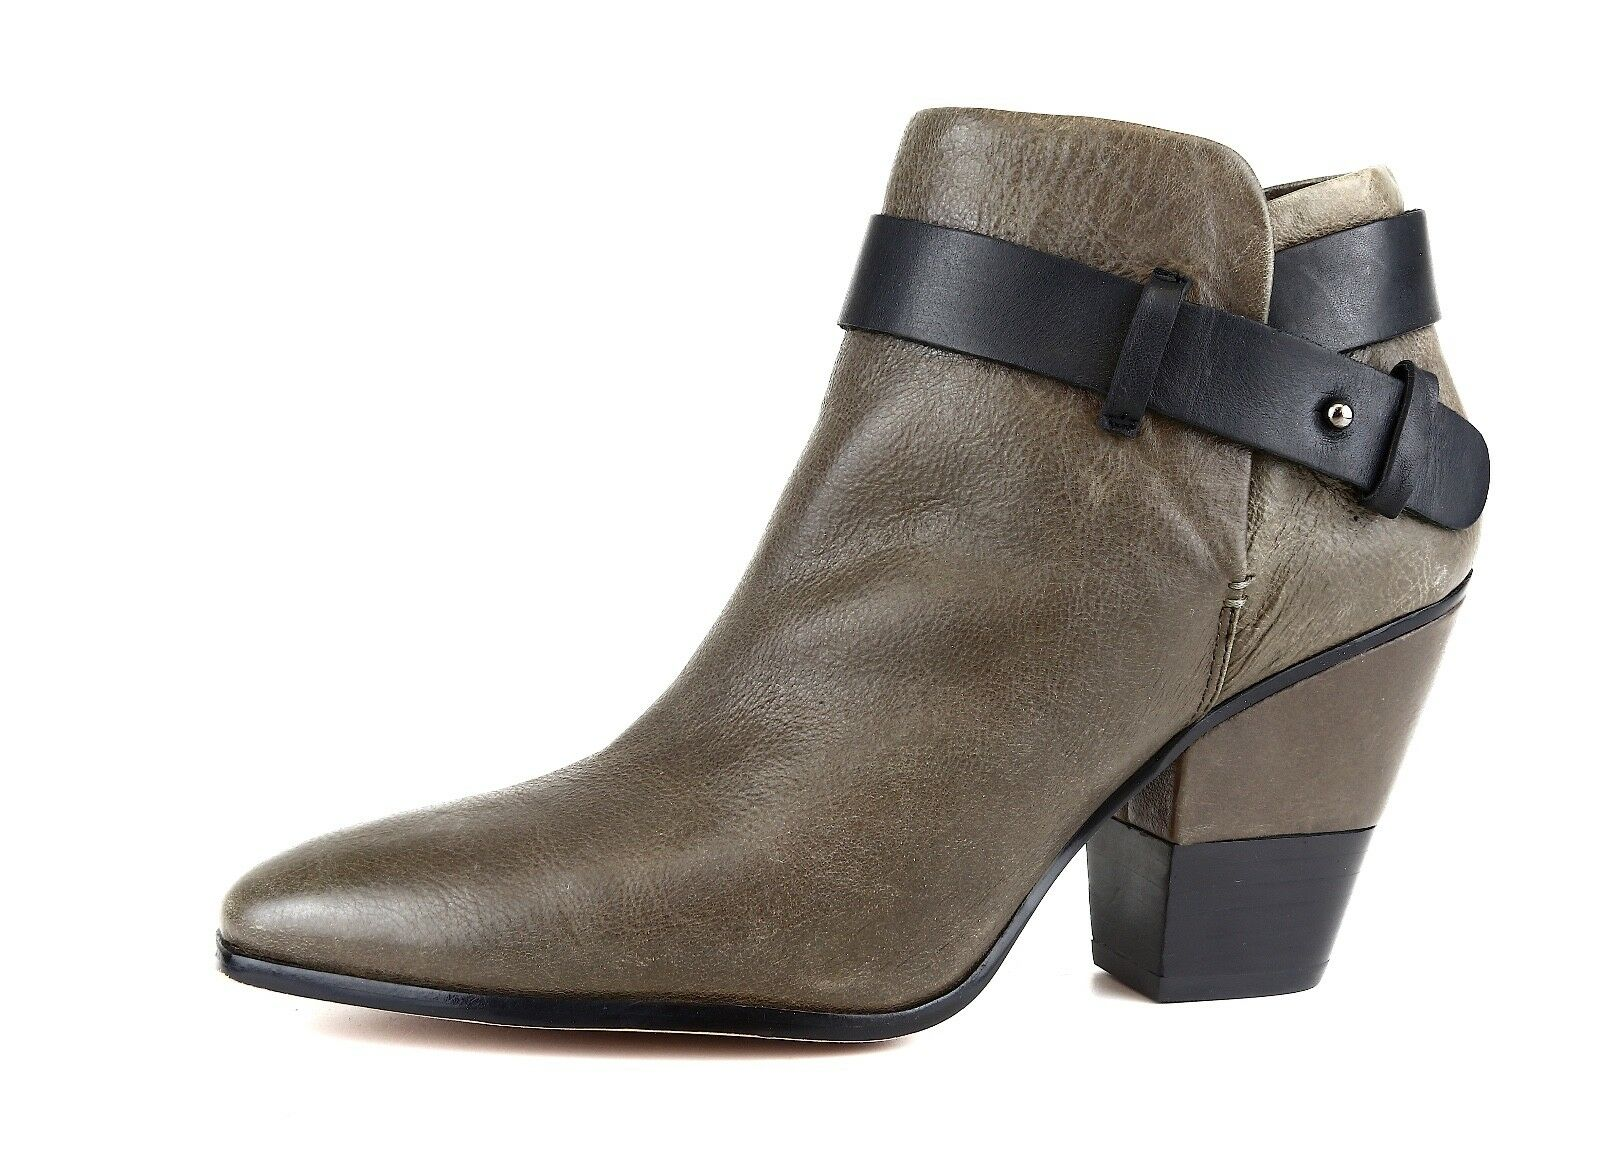 Dolce Vita Haelyn Leather Boot Brown Women Sz 10 5515 *